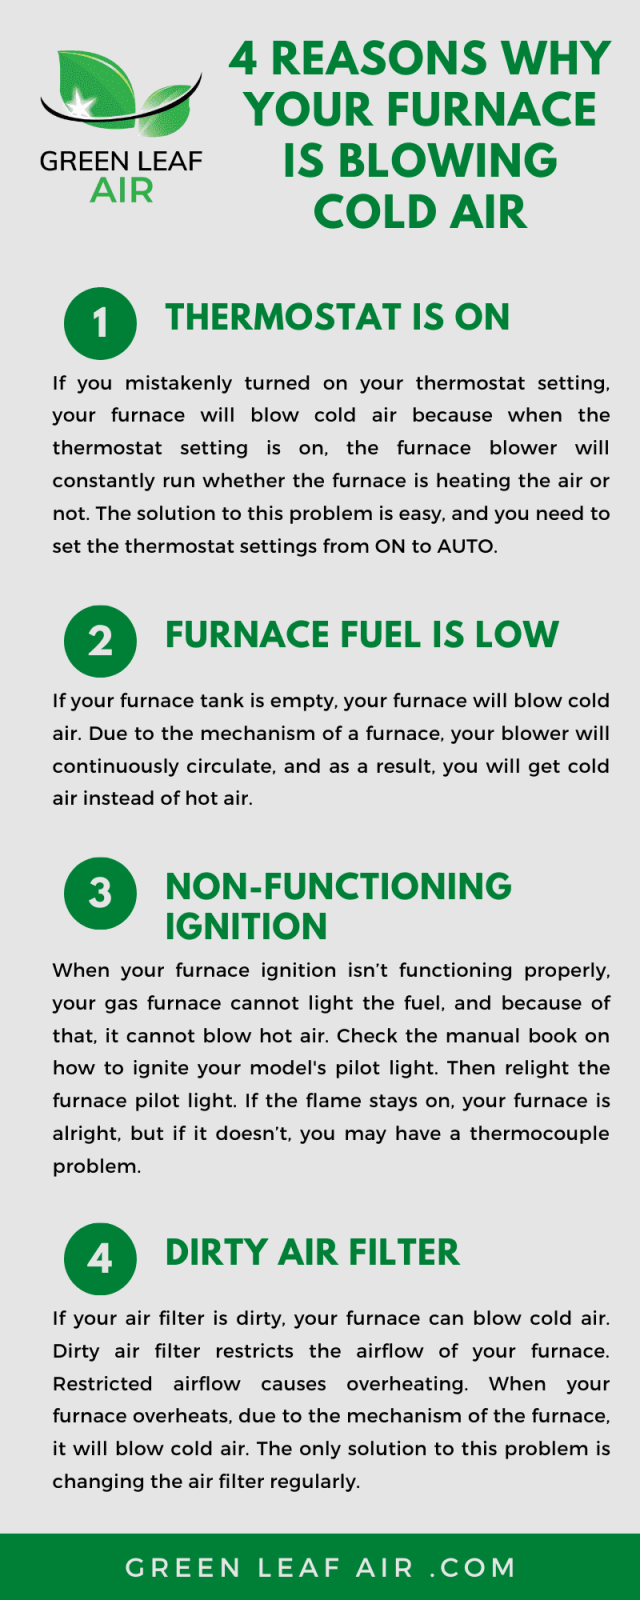 4 Reasons Why Your Furnace Is Blowing Cold Air